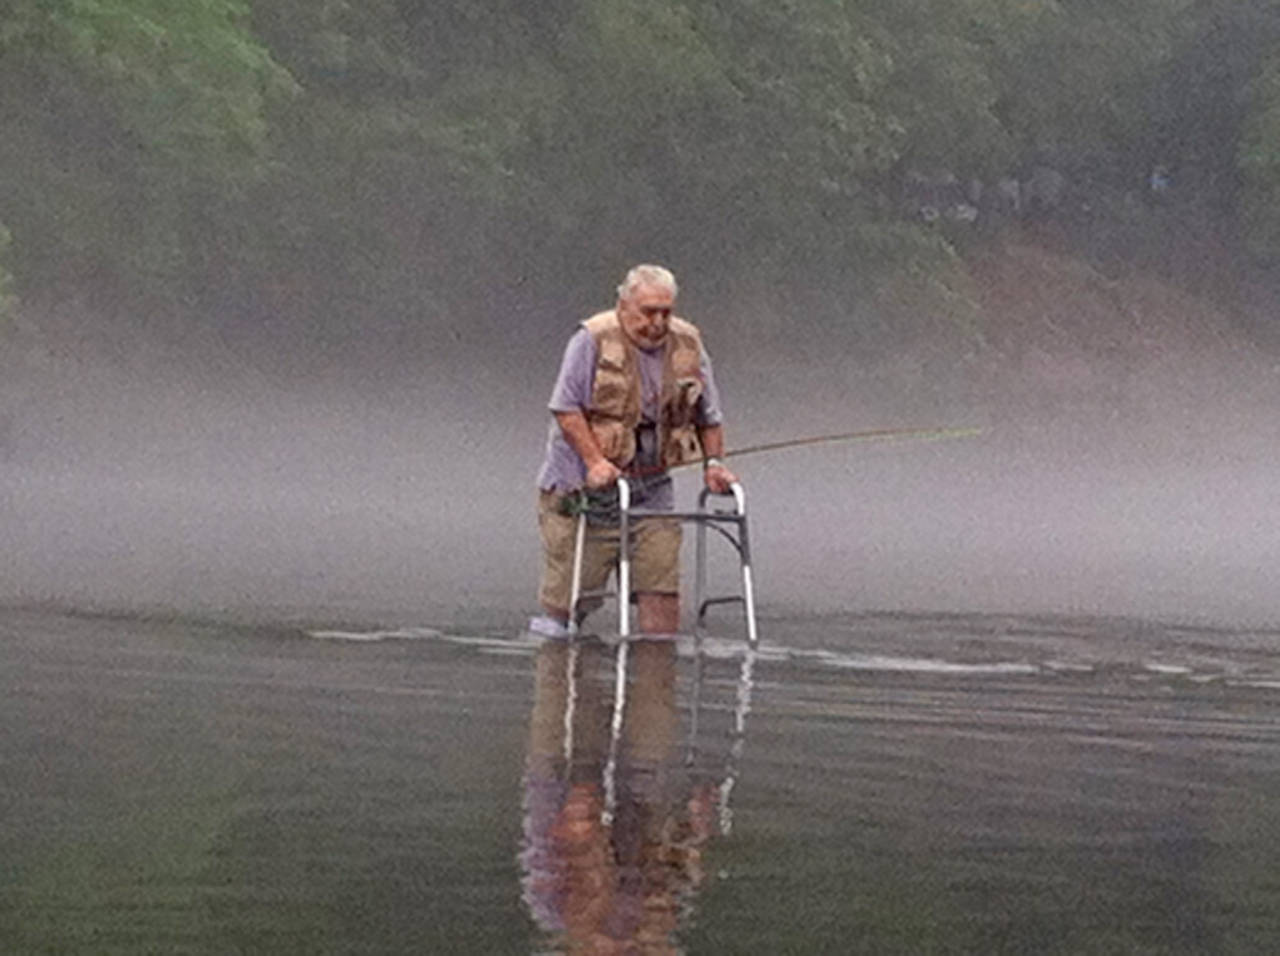 A True Fisherman